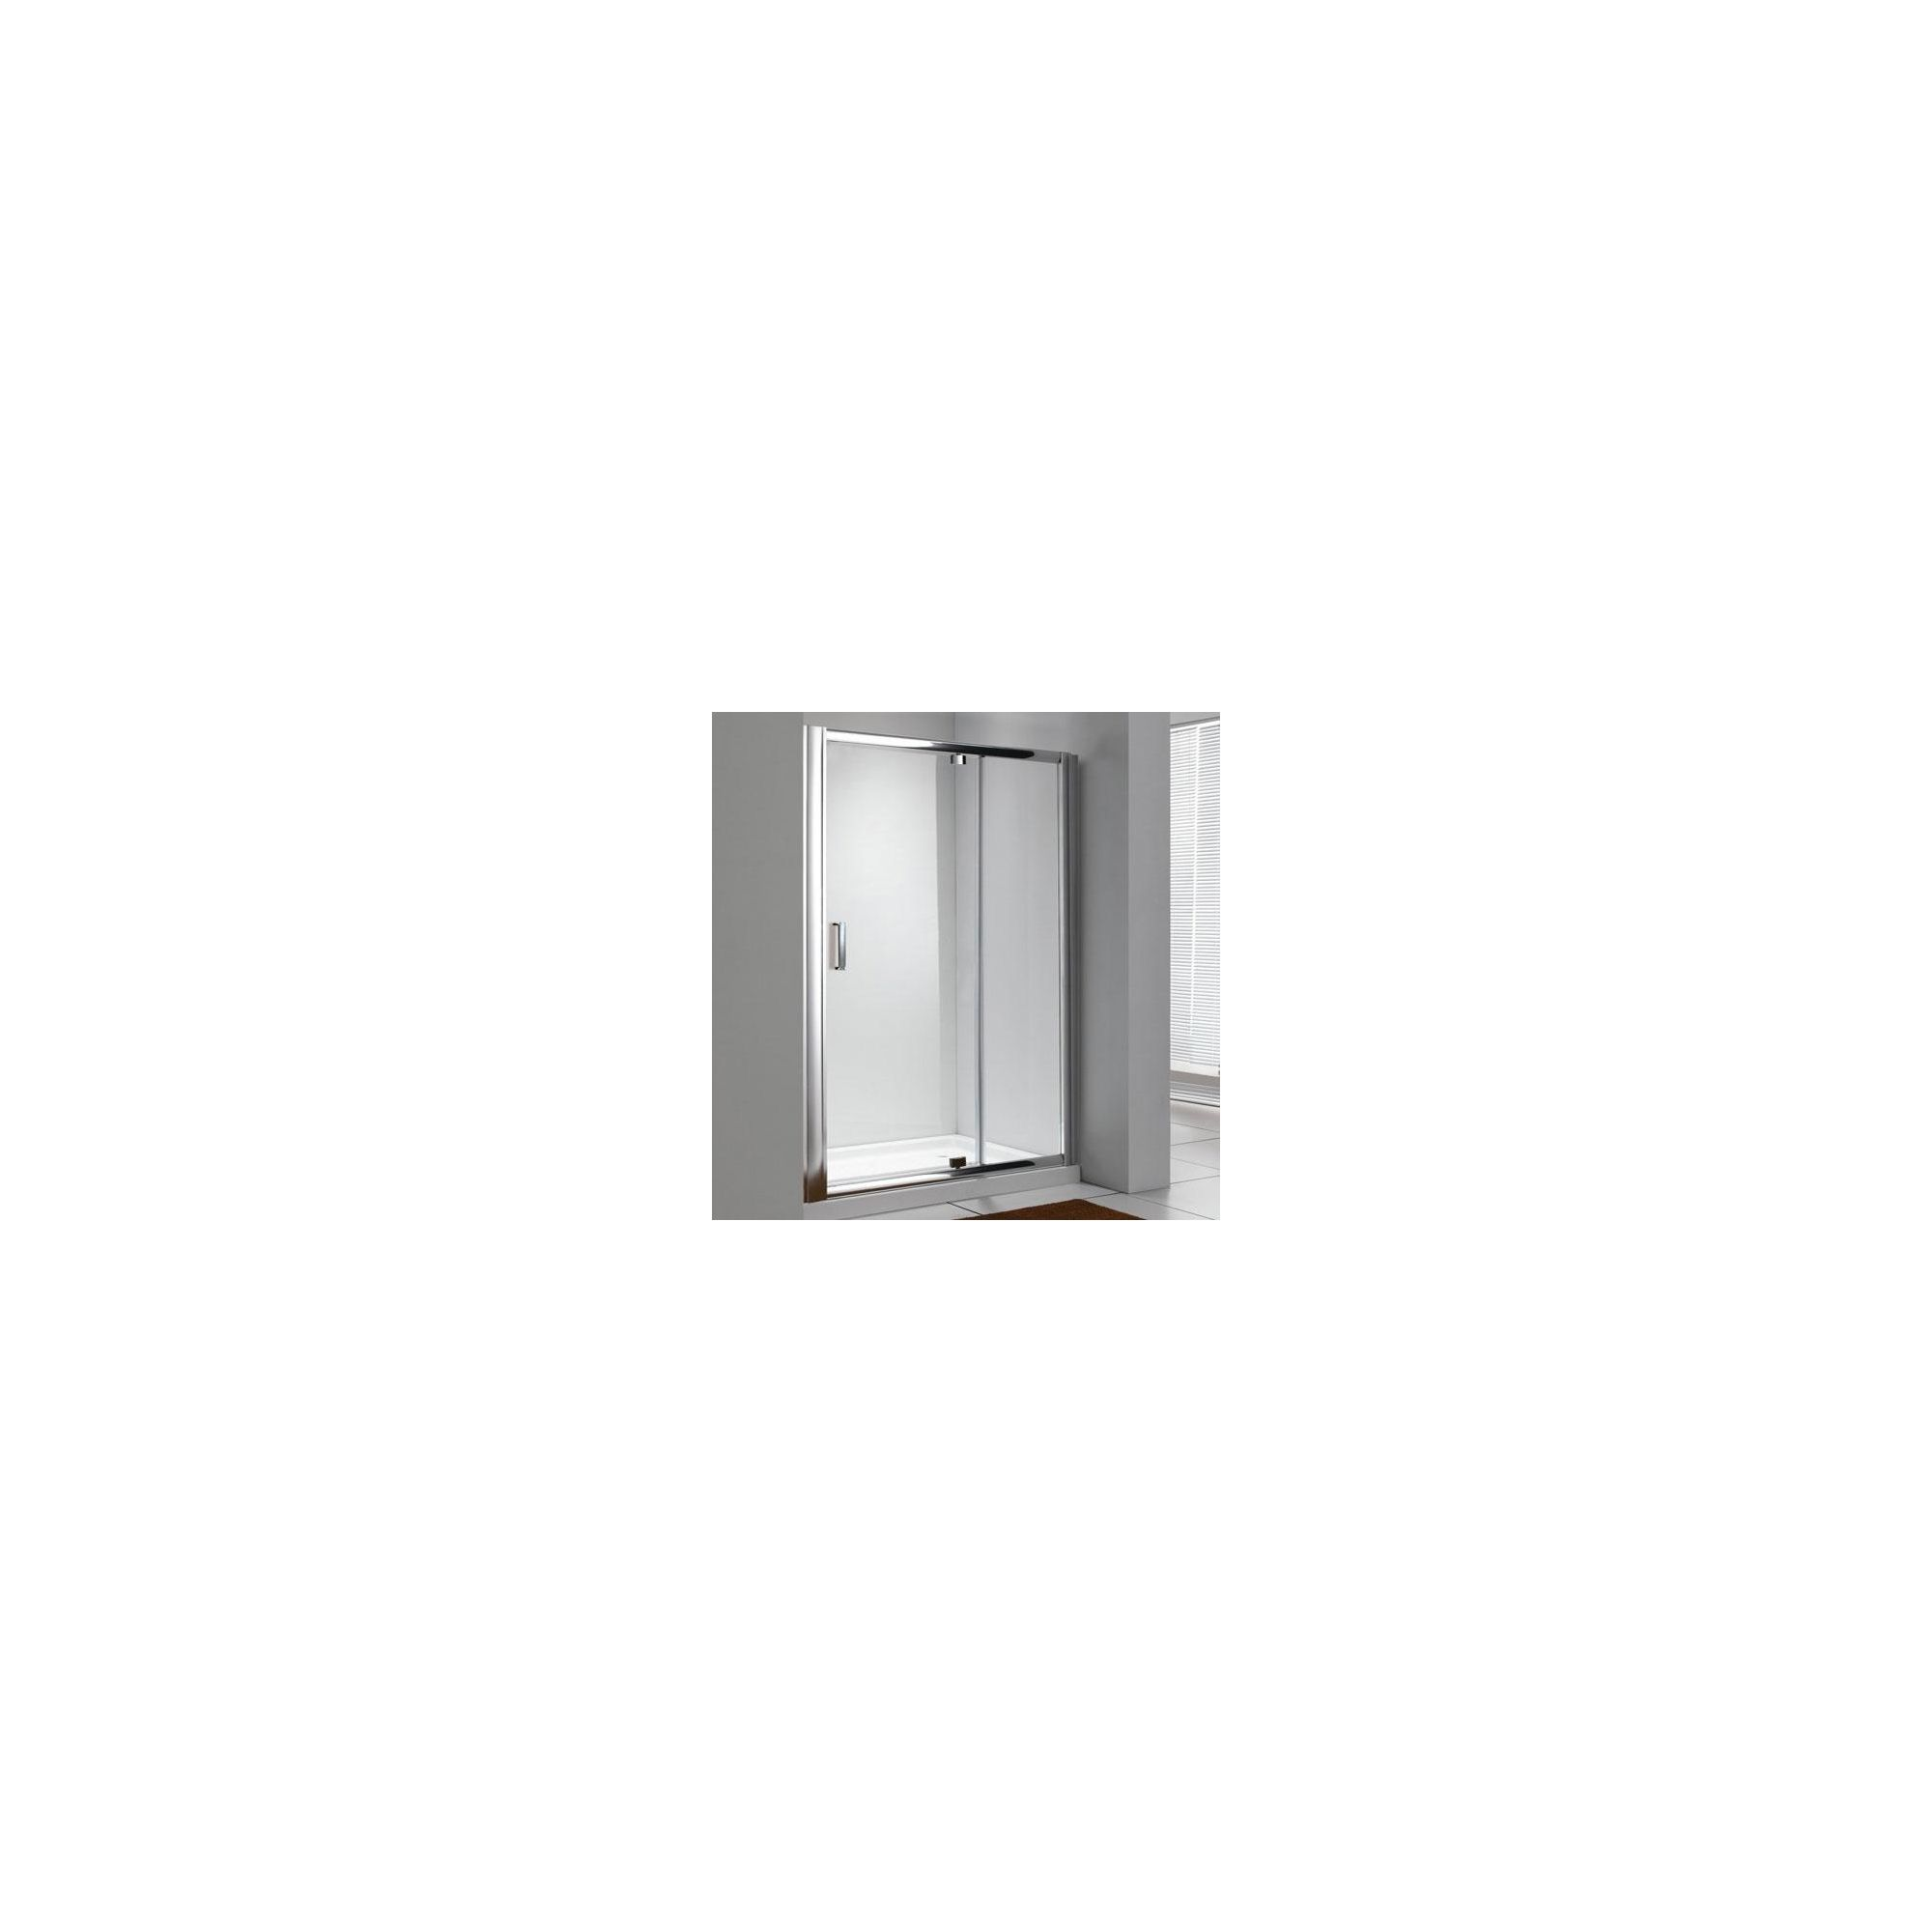 Duchy Style Pivot Door Shower Enclosure, 900mm x 760mm, 6mm Glass, Low Profile Tray at Tesco Direct